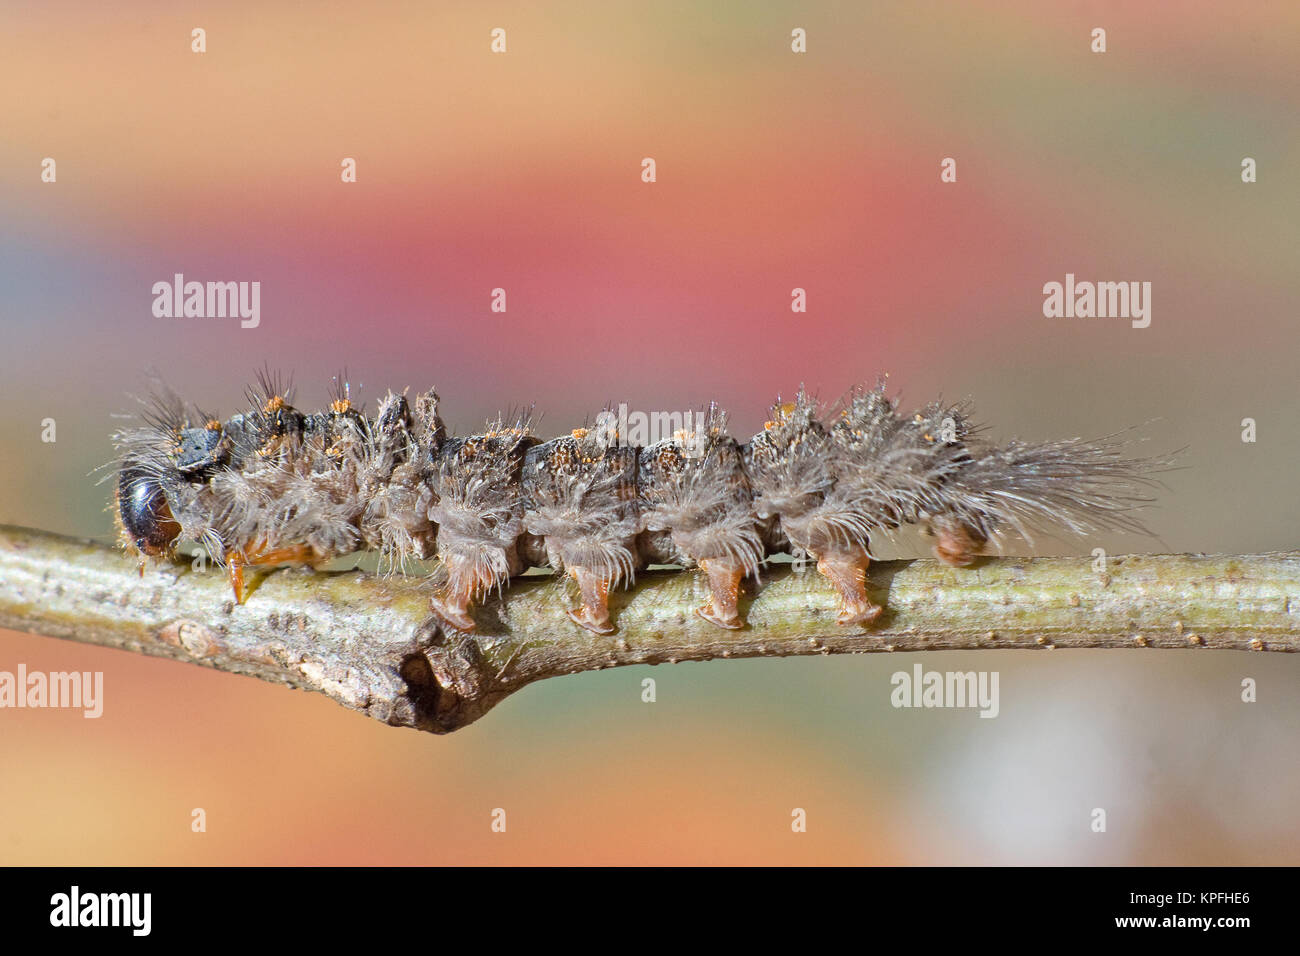 Hairy caterpillar on a twig - Stock Image